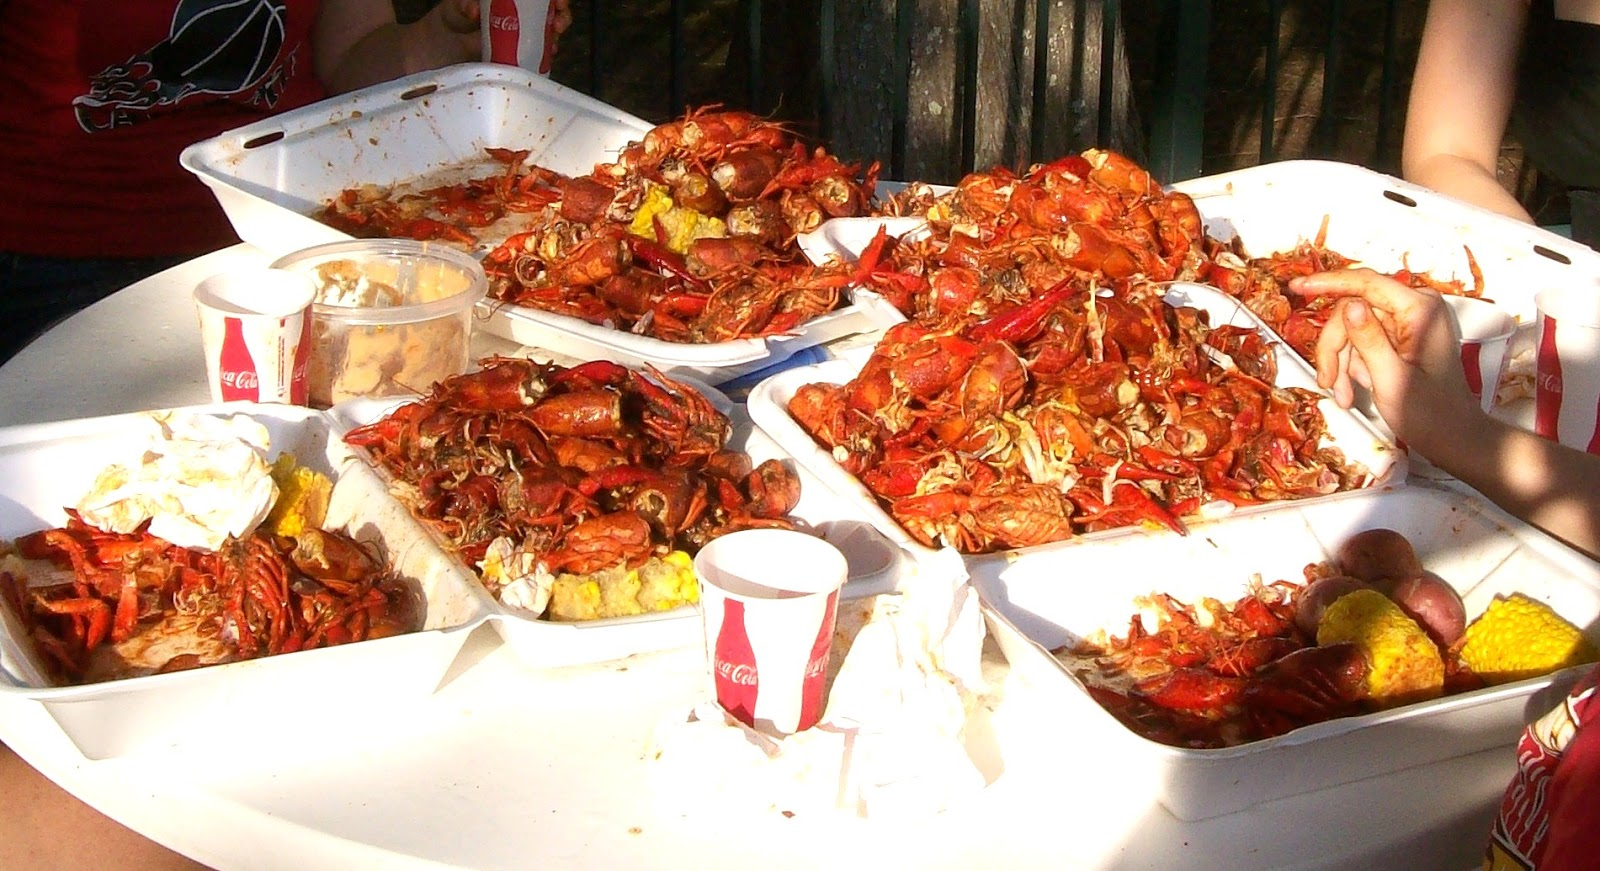 And Tomorrow And Sunday We'll Be Going To The Crawfish Festival, In Breaux